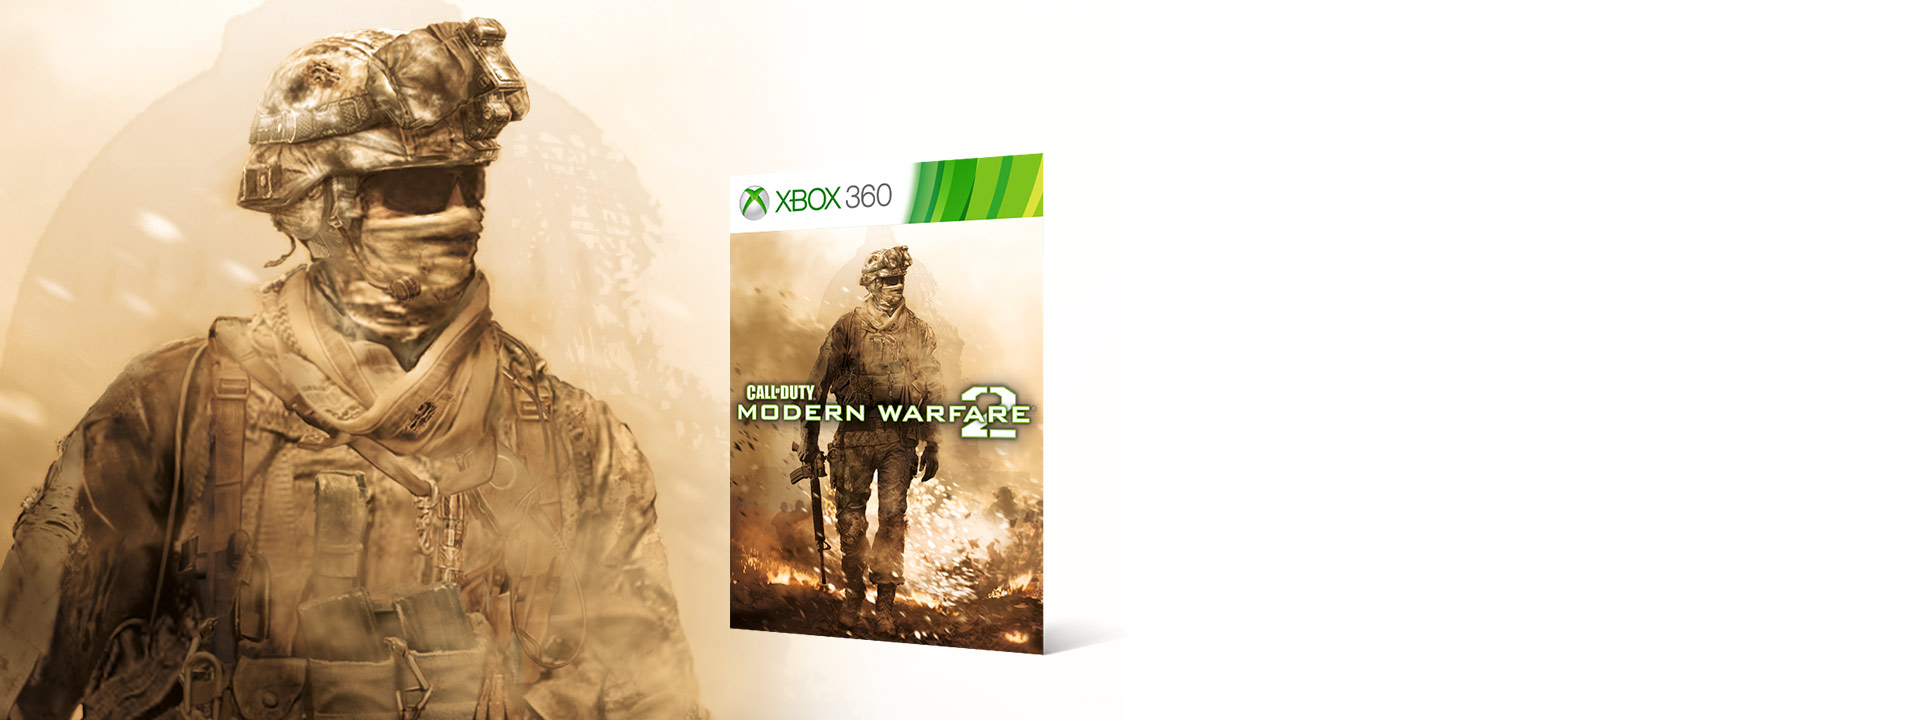 Call of Duty Modern Warfare 2 boxshot next to a Modern Warfare Soldier